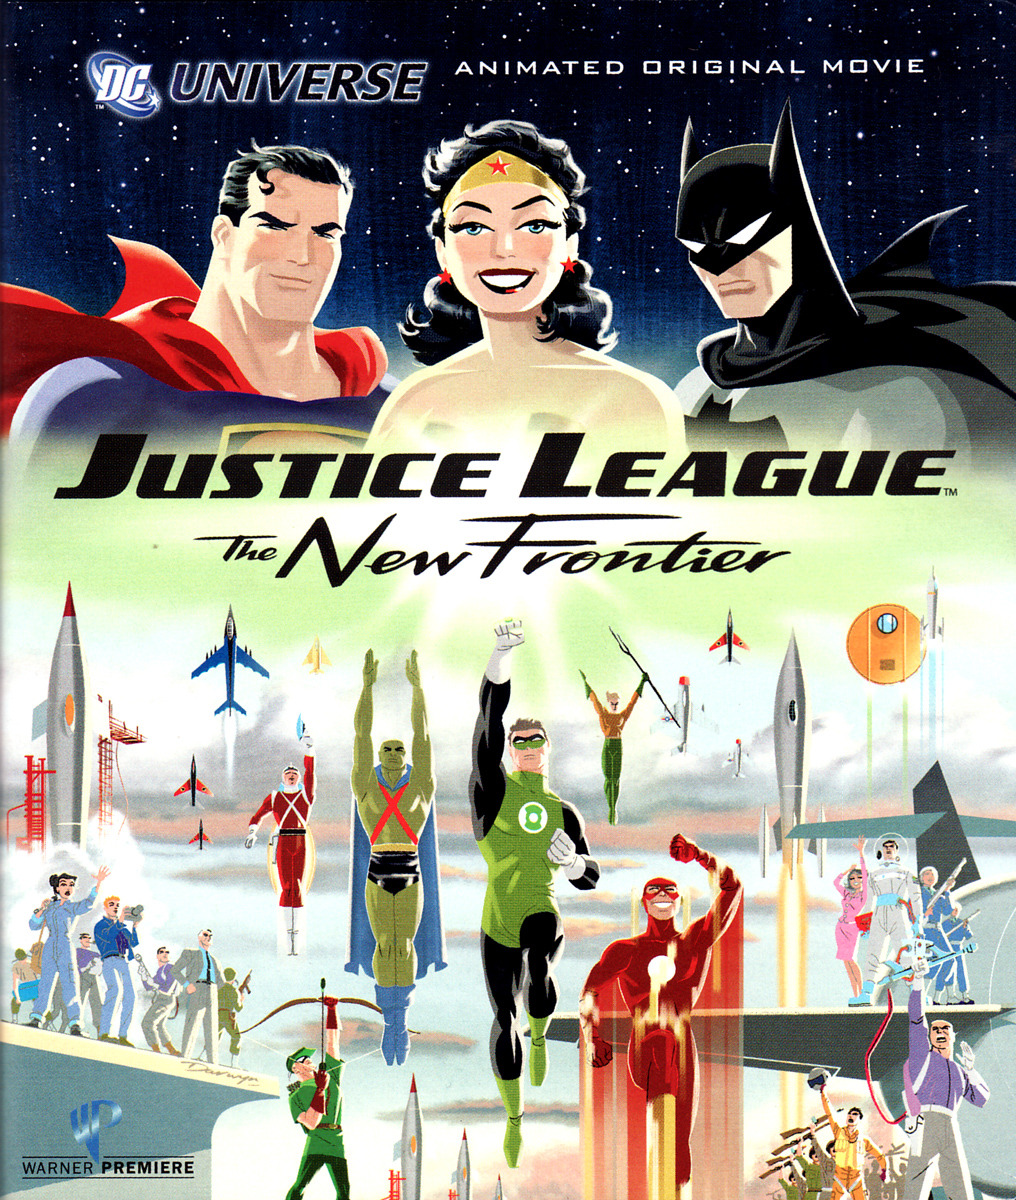 Title: Justice League: The New Frontier (2008) Synopsis: An evil creature bent on destroying mankind must be stopped by individuals with the powers to protect the innocent. Why you should like it: It's f—kin' Justice League. The Flash and Green Lantern kind of take the cake here above the rest of the cast, but that's alright. It works. Availability: DVD, Blu-Ray, Digital Download.